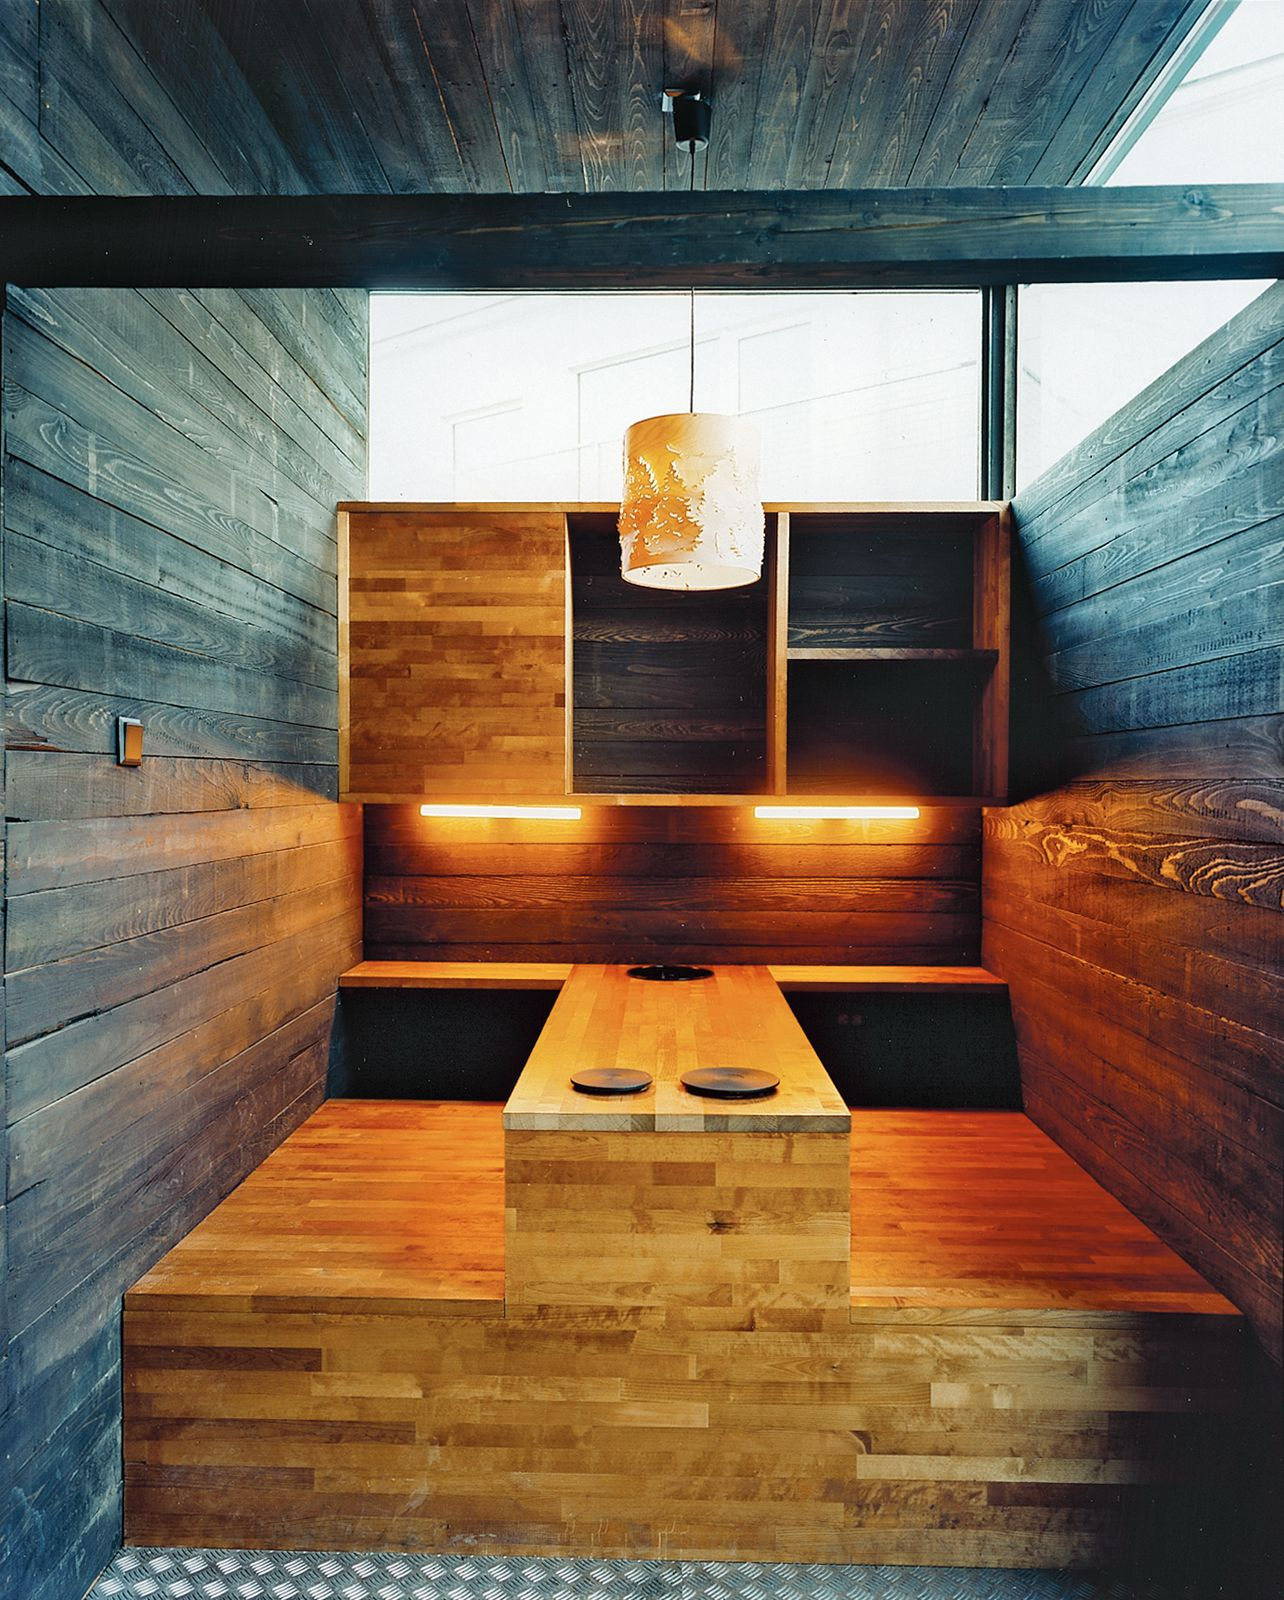 Captivating The Kitchen Table, Built Into The Structure Of The House, Includes Two Hot  Plates Good Ideas